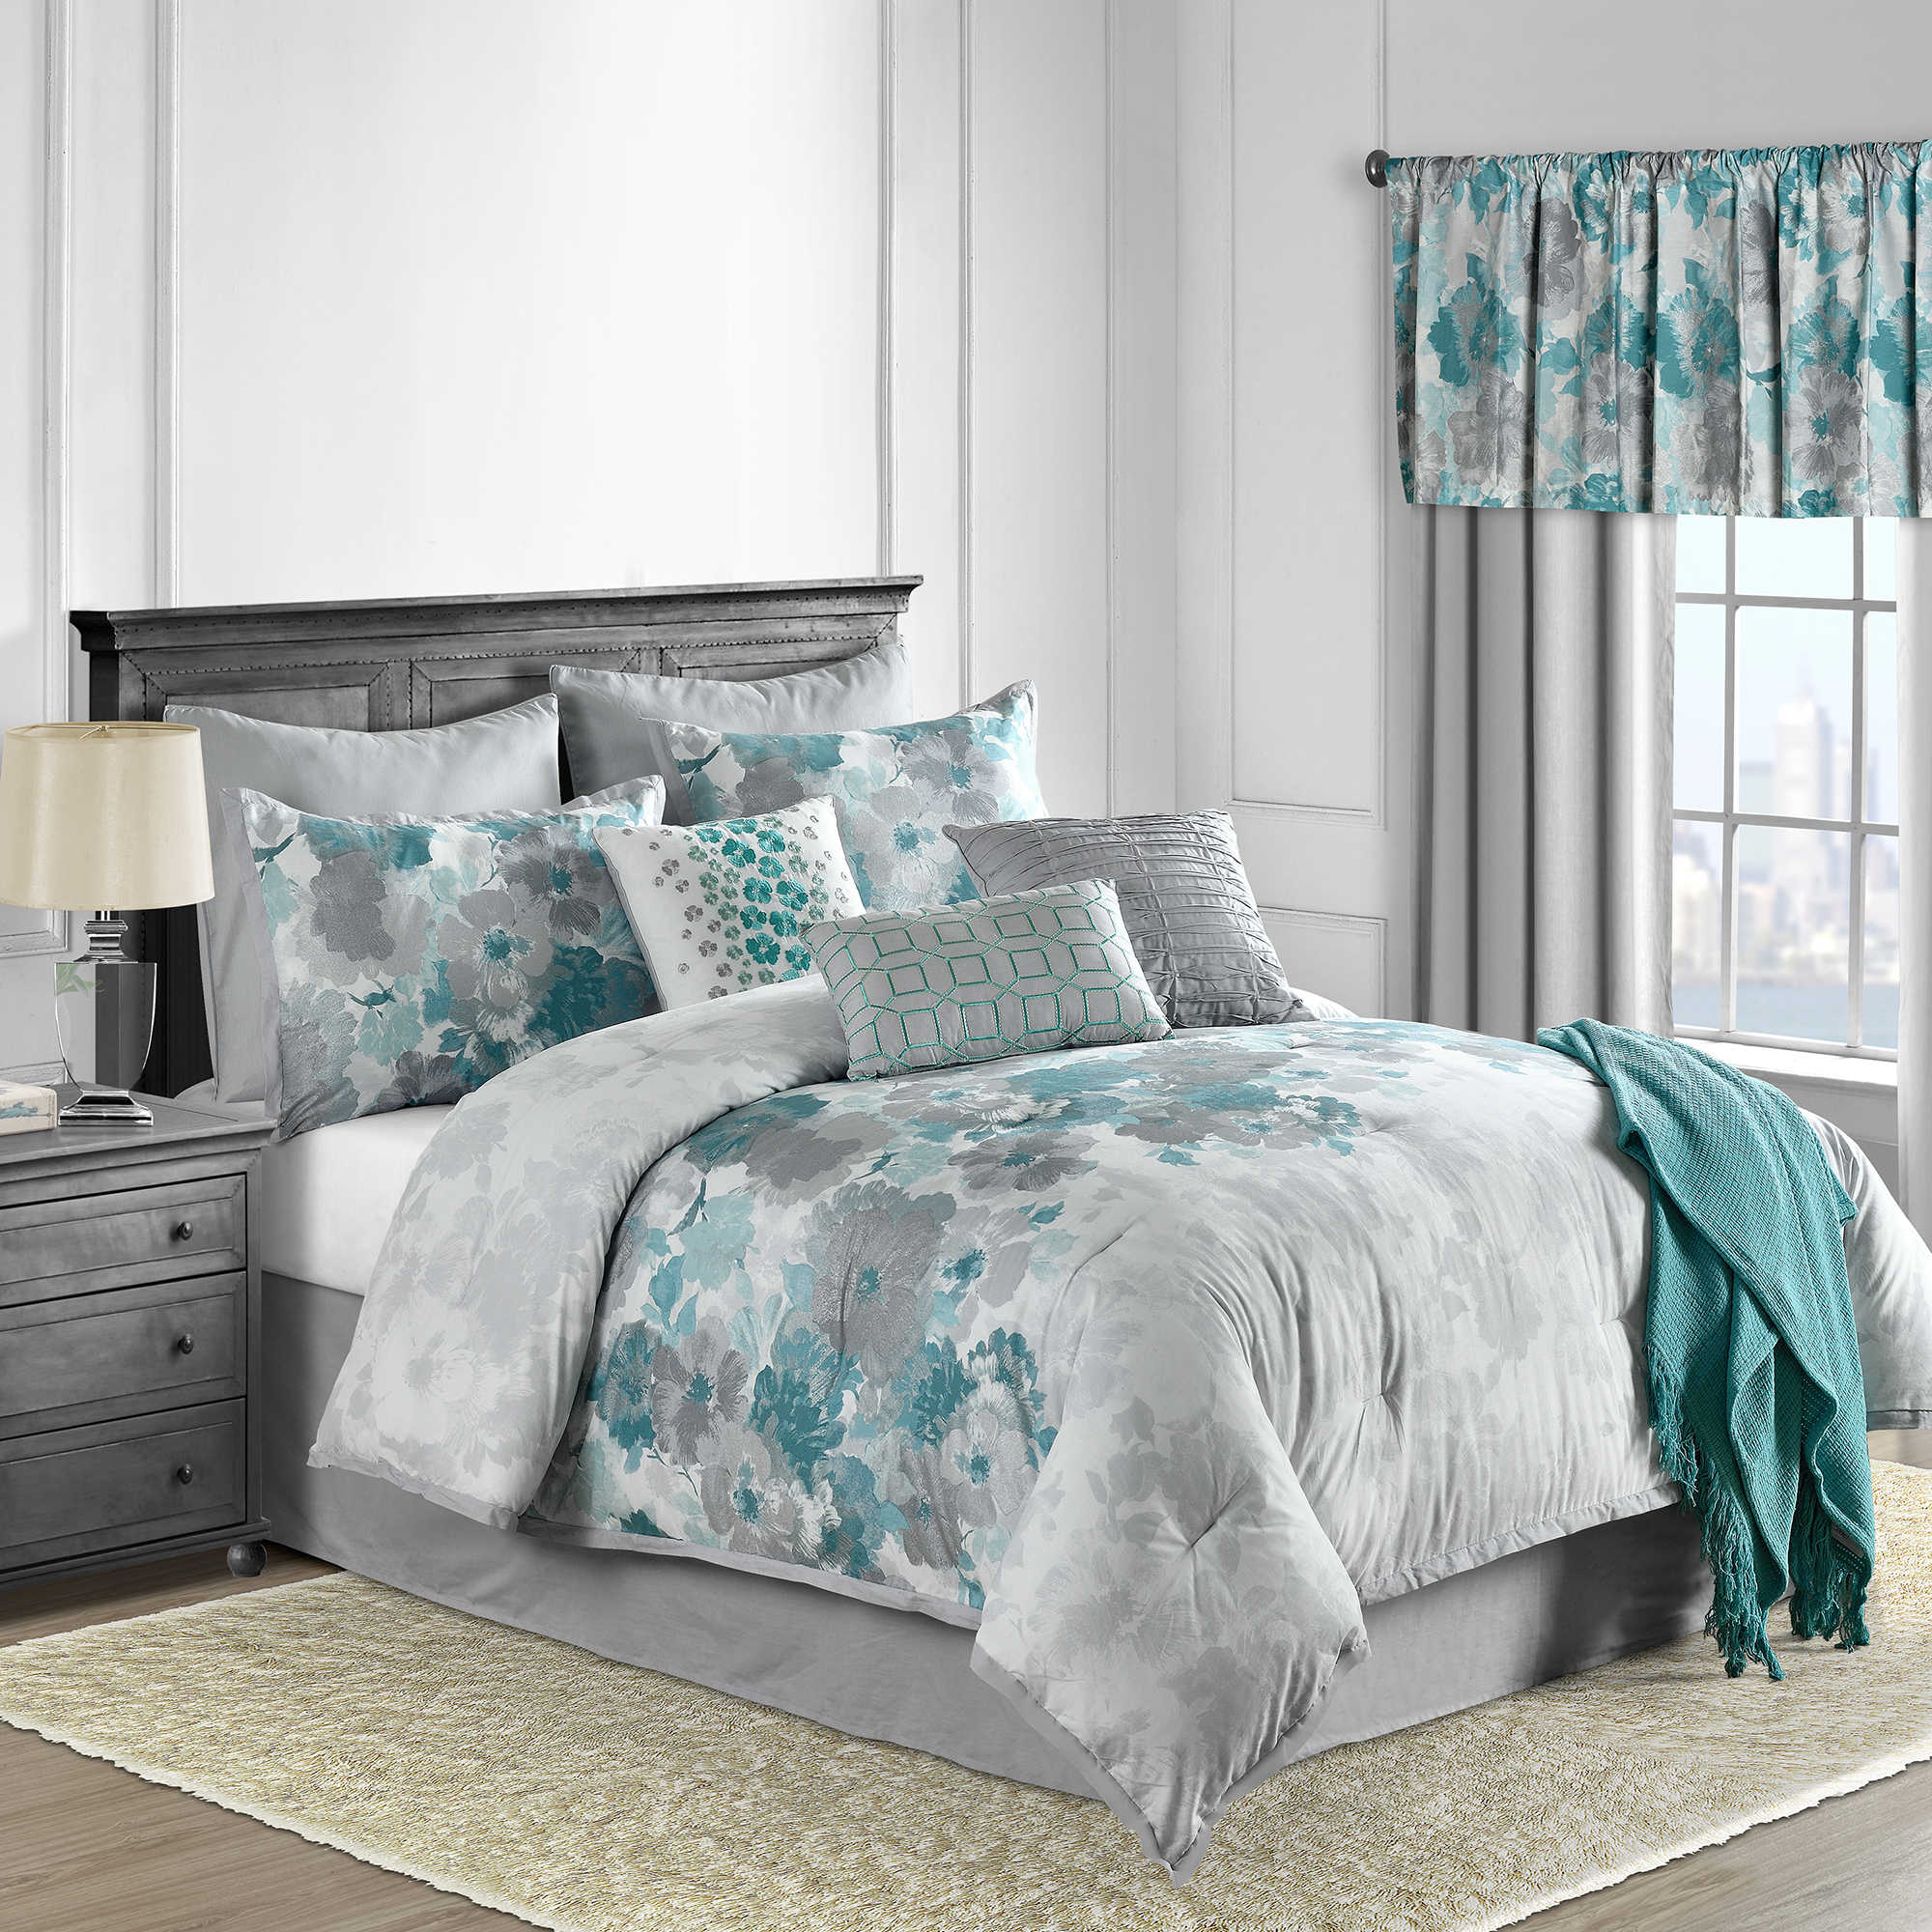 bedding burgundy decor comforters queen brown gardens ecrinslodge cozy use and piece waterford better set comforter idea with homes vines regarding